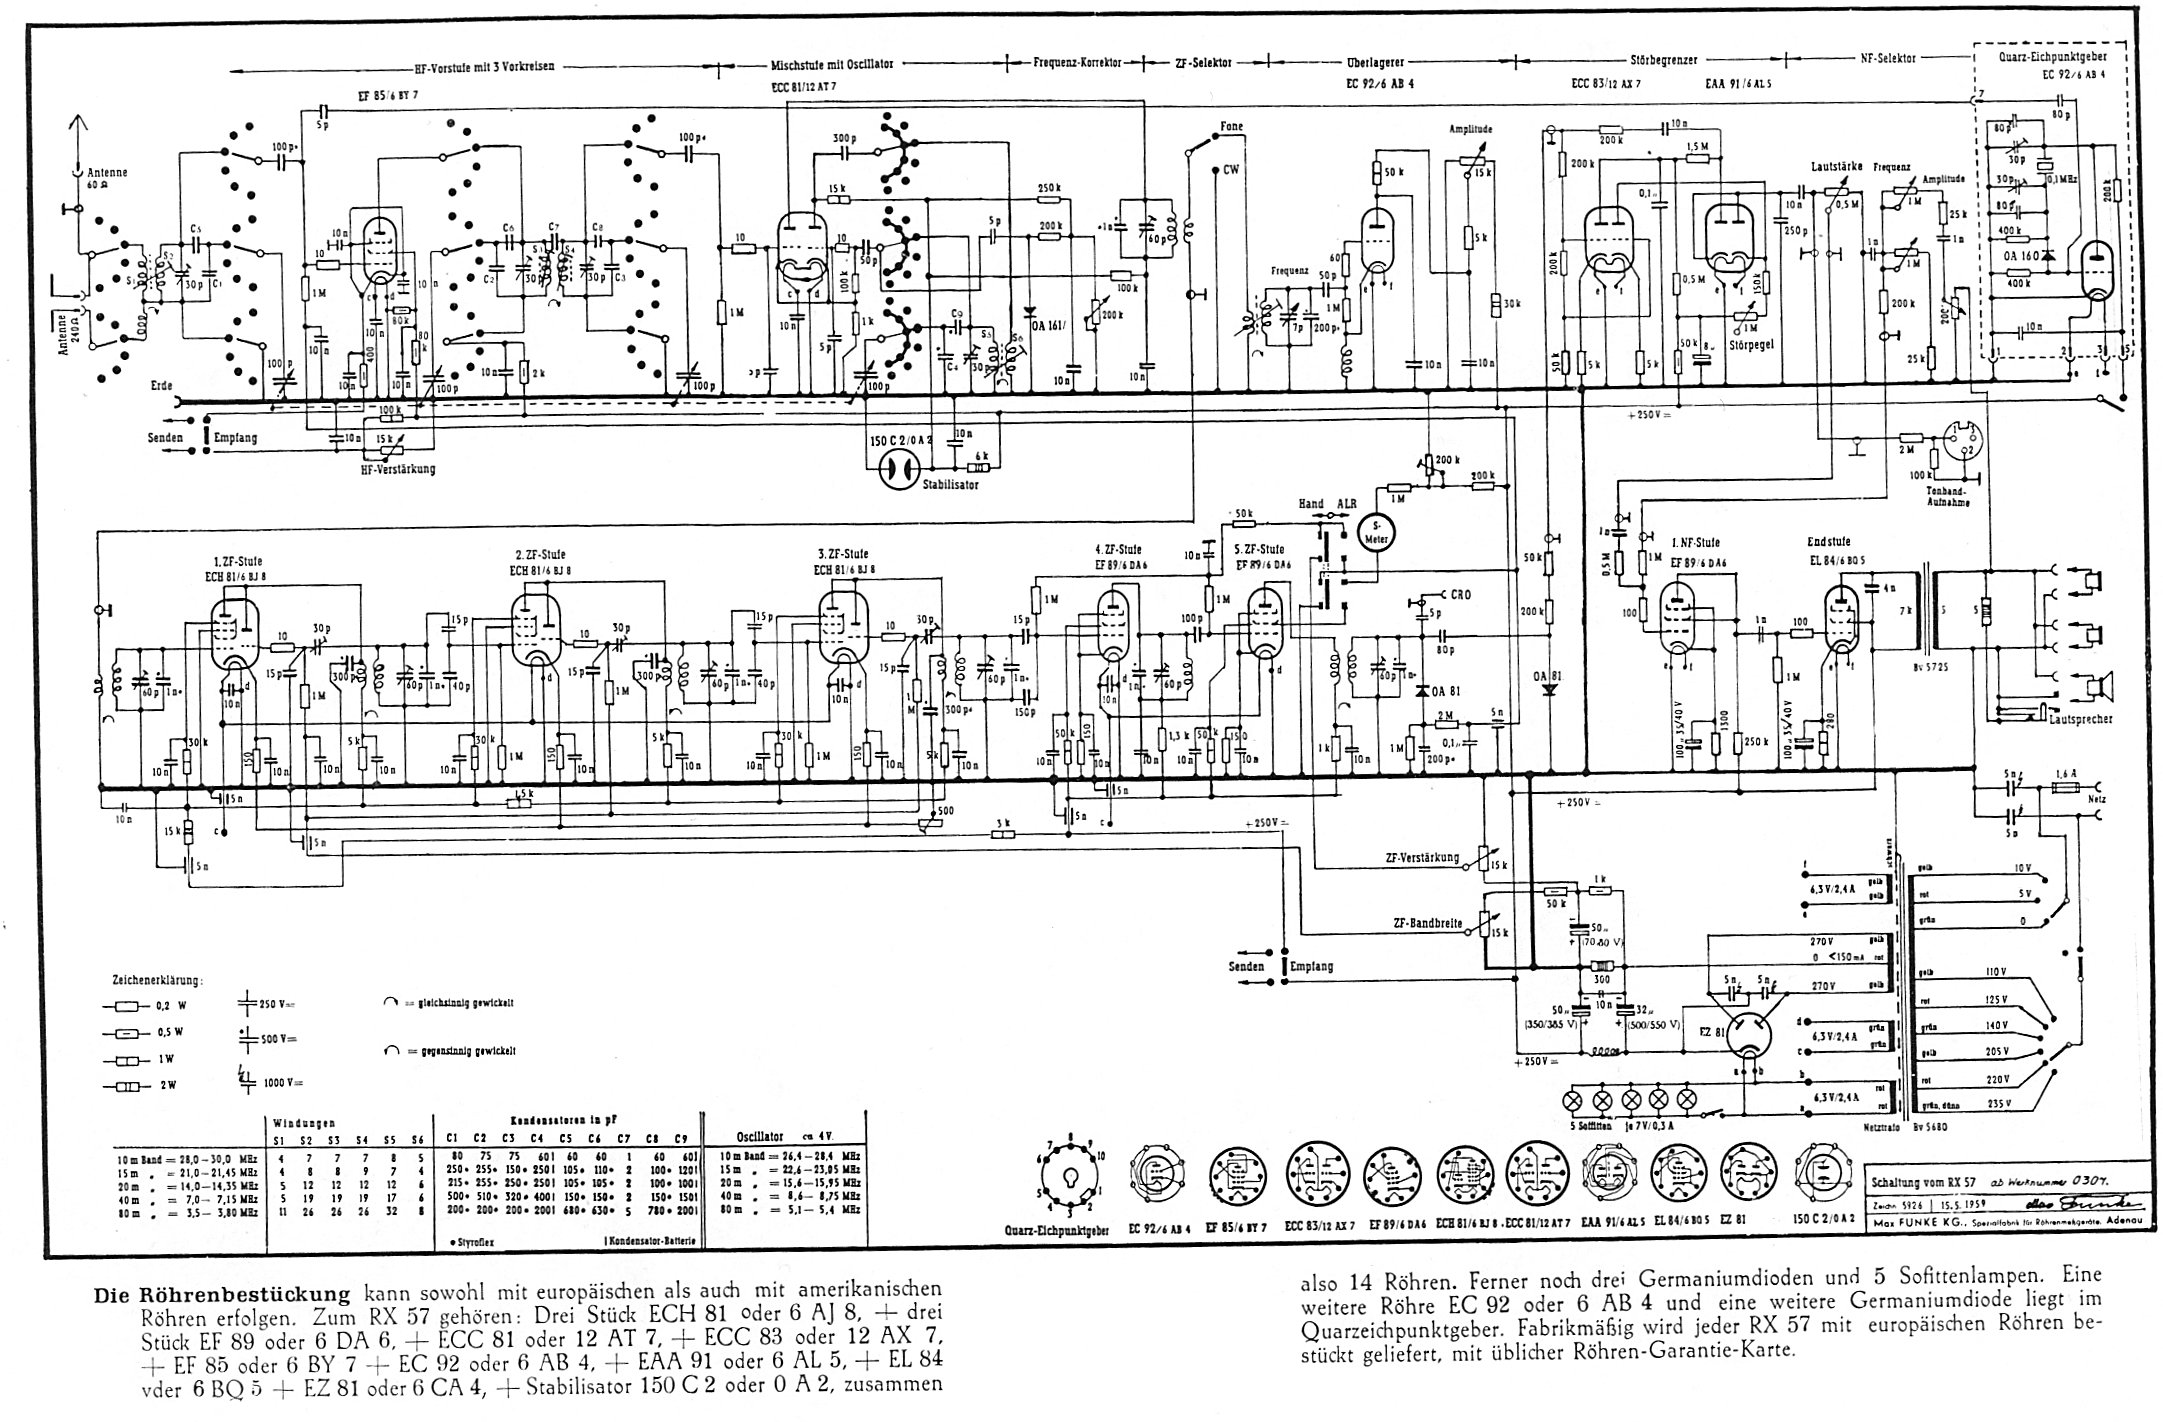 microphone jack wiring diagram microphone discover your wiring midland cb schematic 2 5mm audio cable splicing